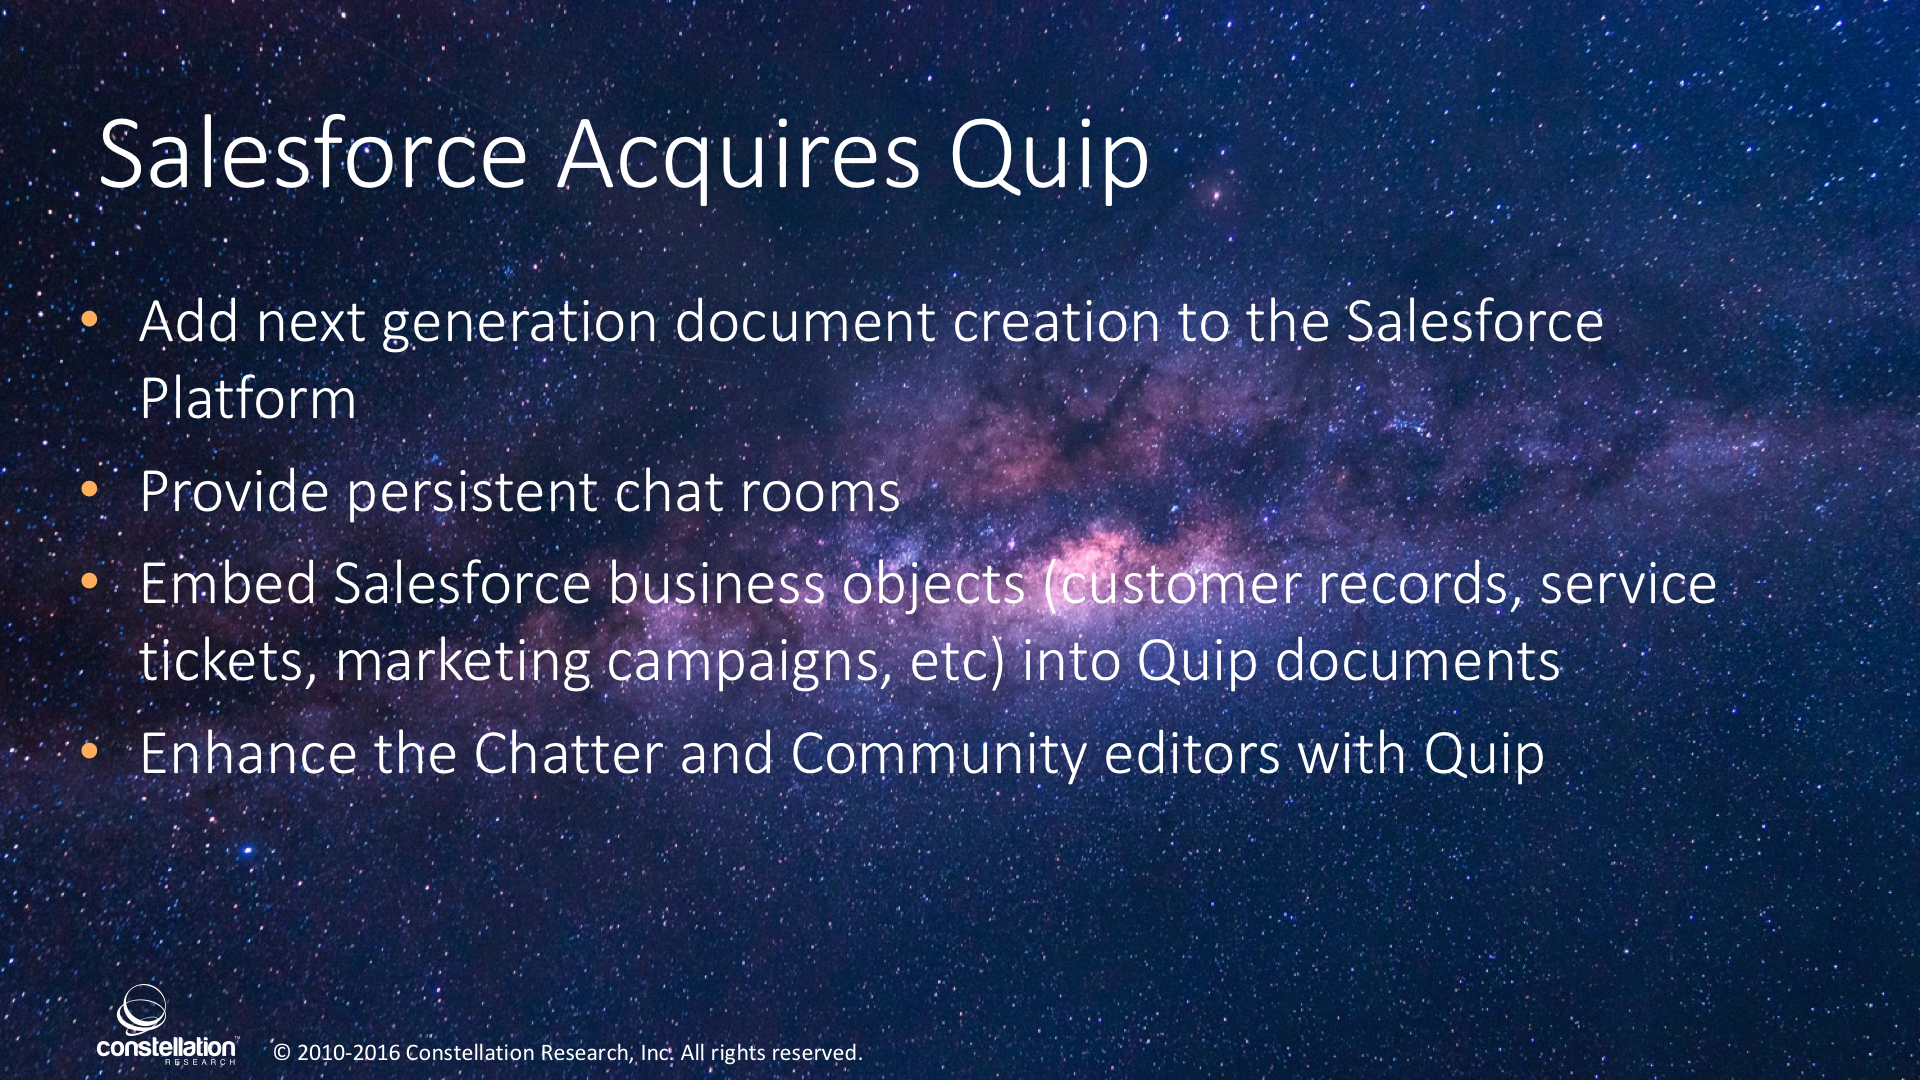 In The Next Version - Salesforce Acquires Quip: Document